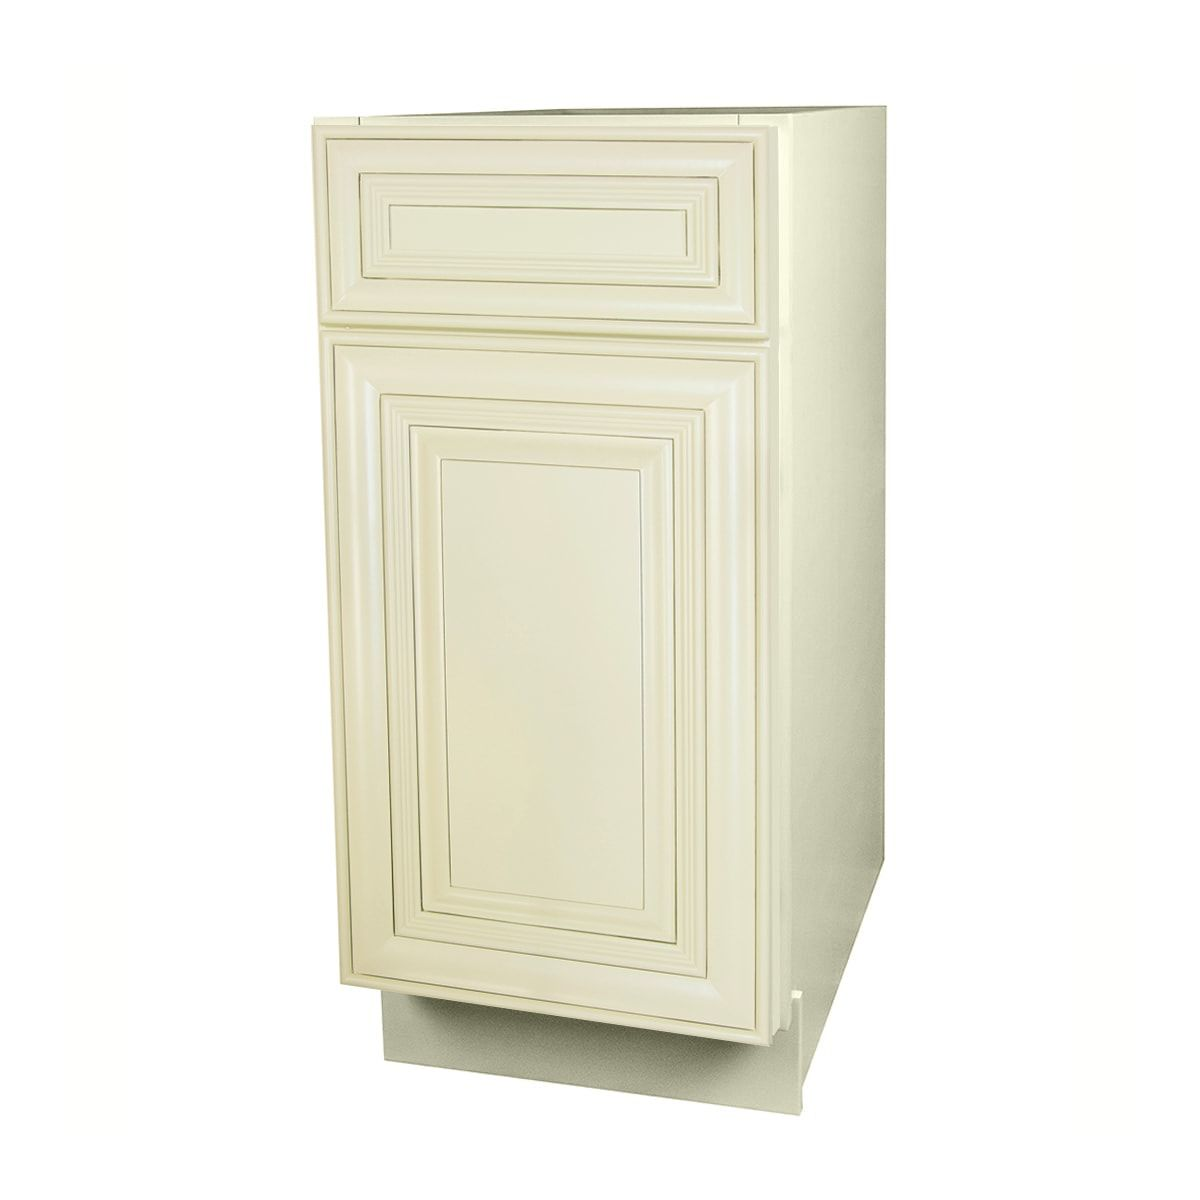 Kitchen Cabinets For Sale Online Wholesale Diy Cabinets Rta Cabinet Store Buy Kitchen Cabinets Rta Kitchen Cabinets Buy Cabinets